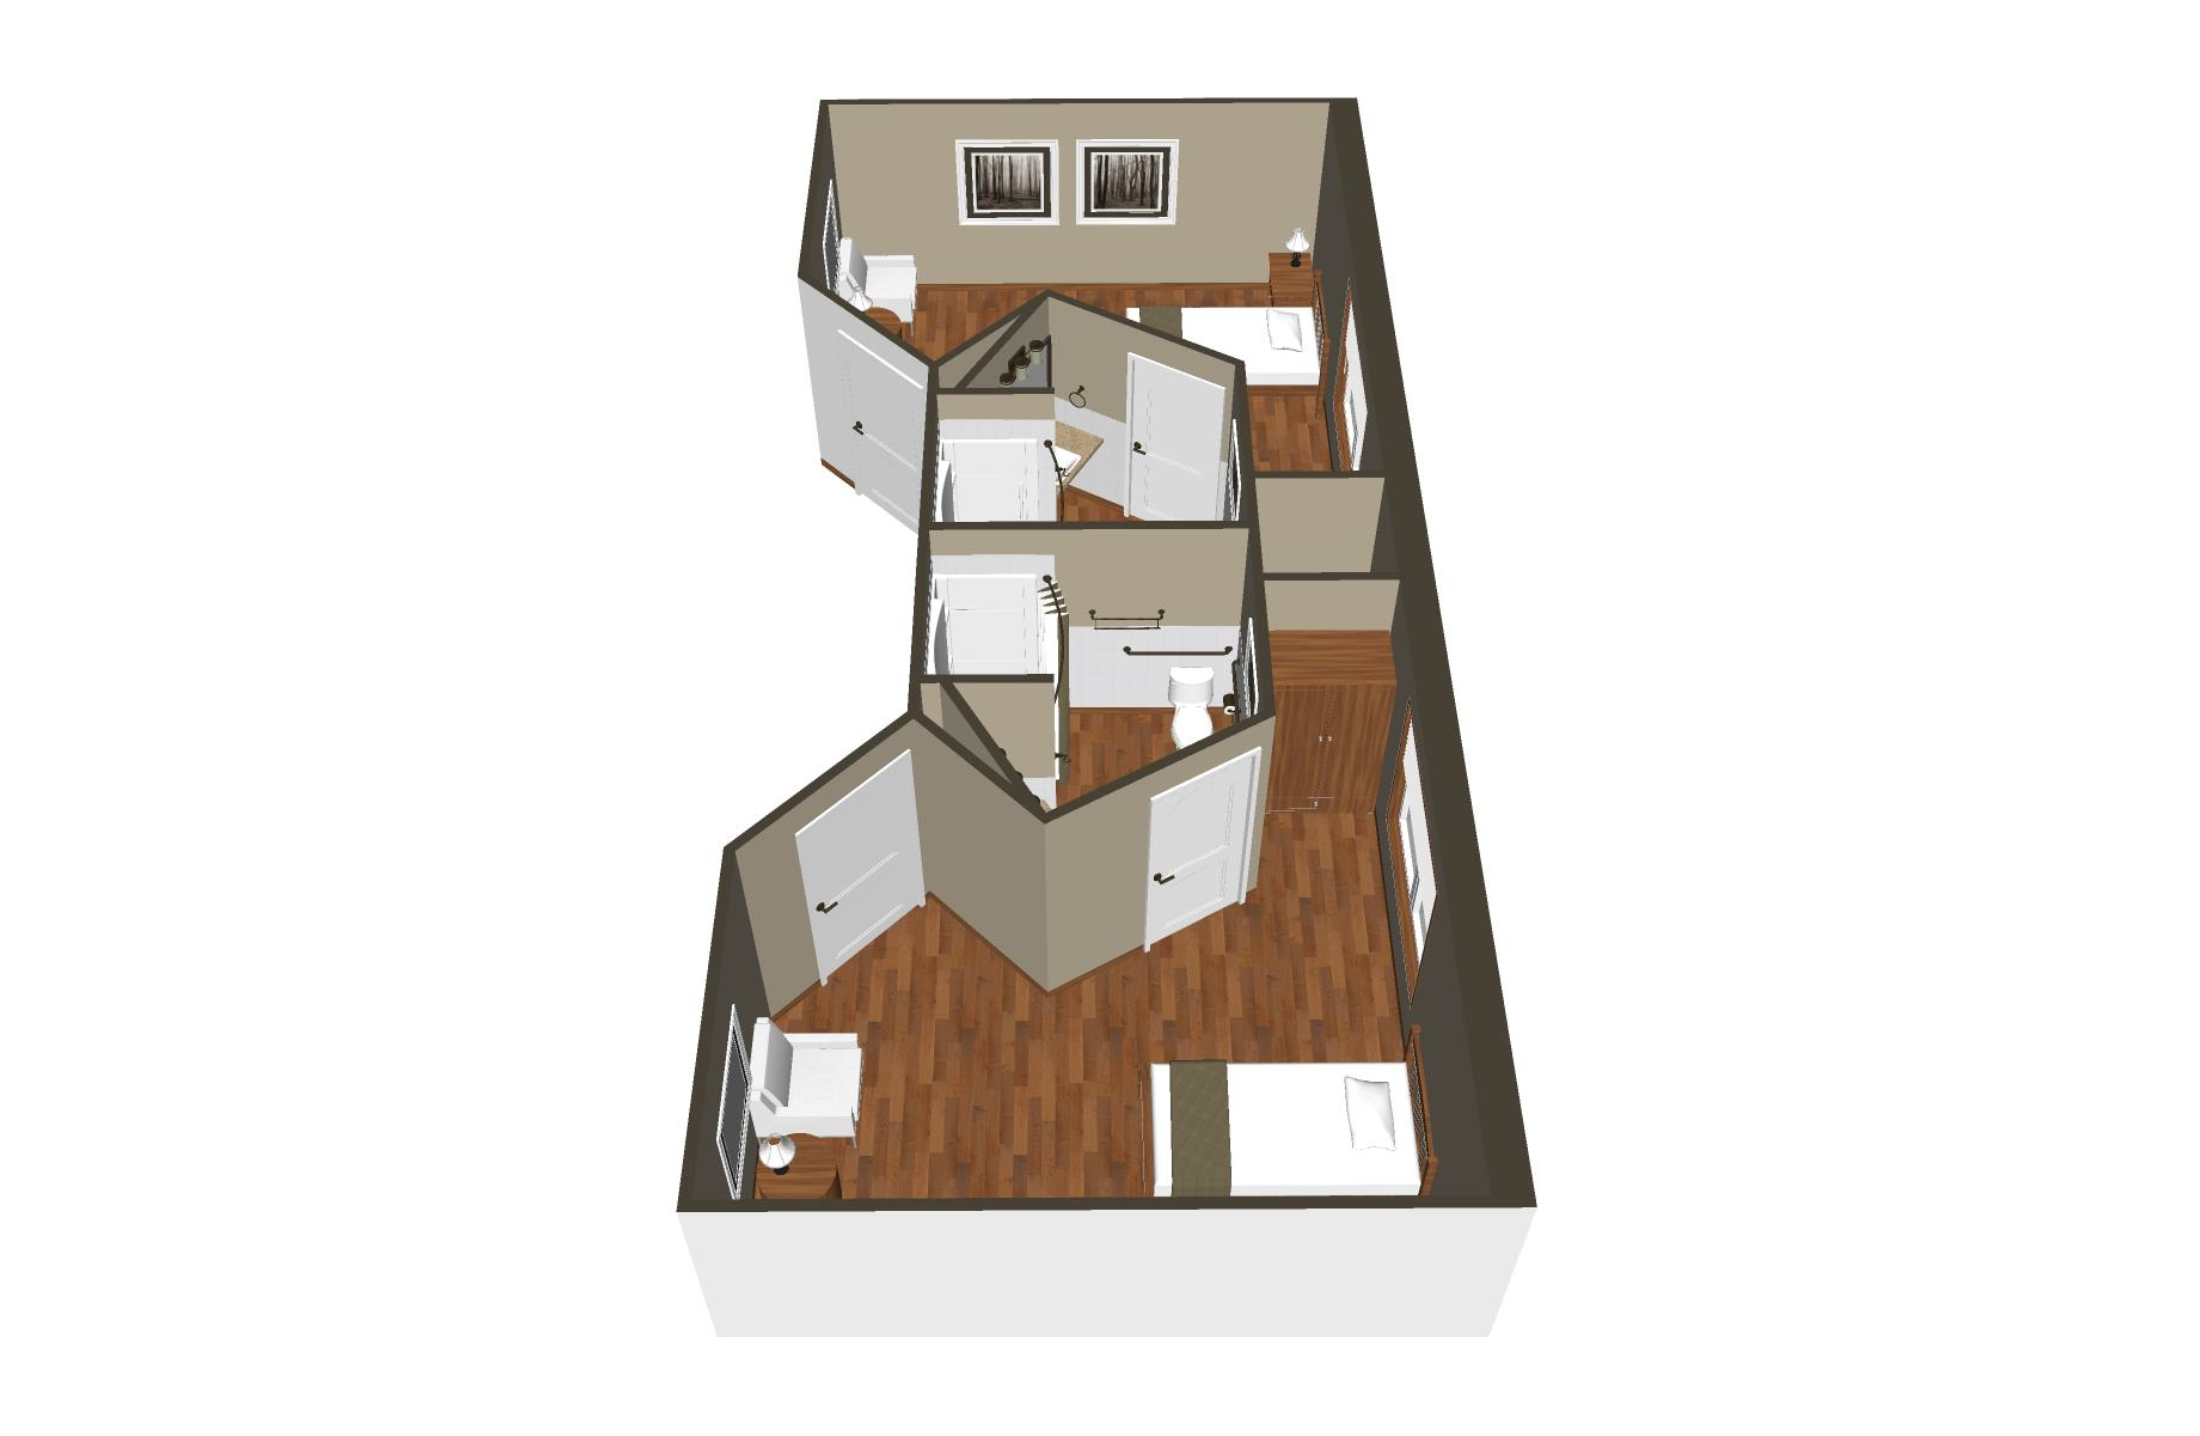 Room layout photo_Page_5.png